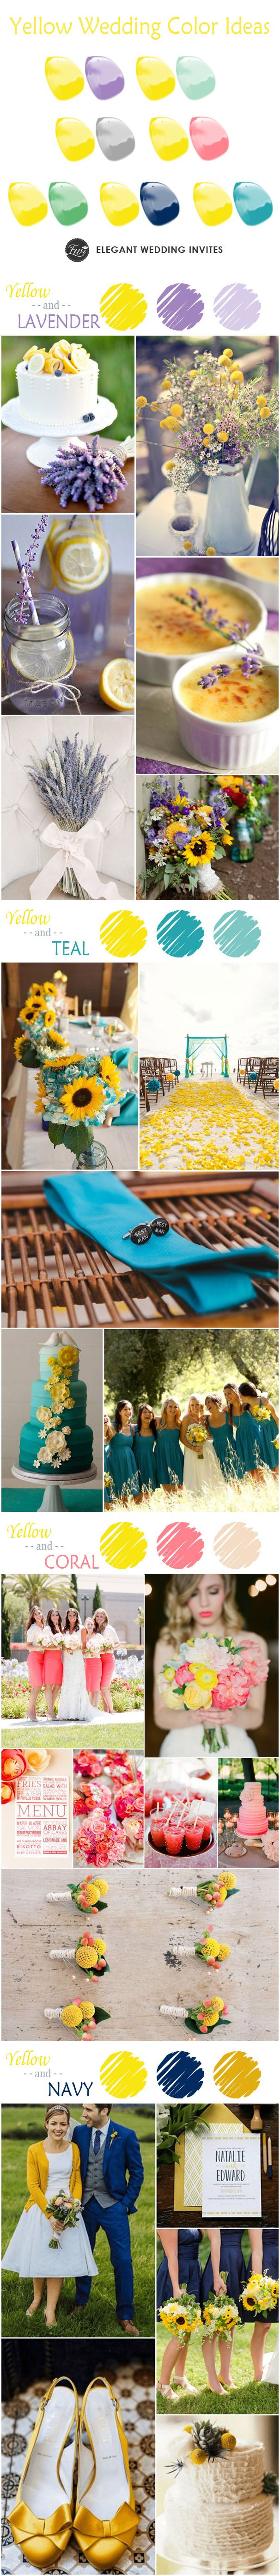 7 Great Yellow Wedding Color Ideas 2015 Trends